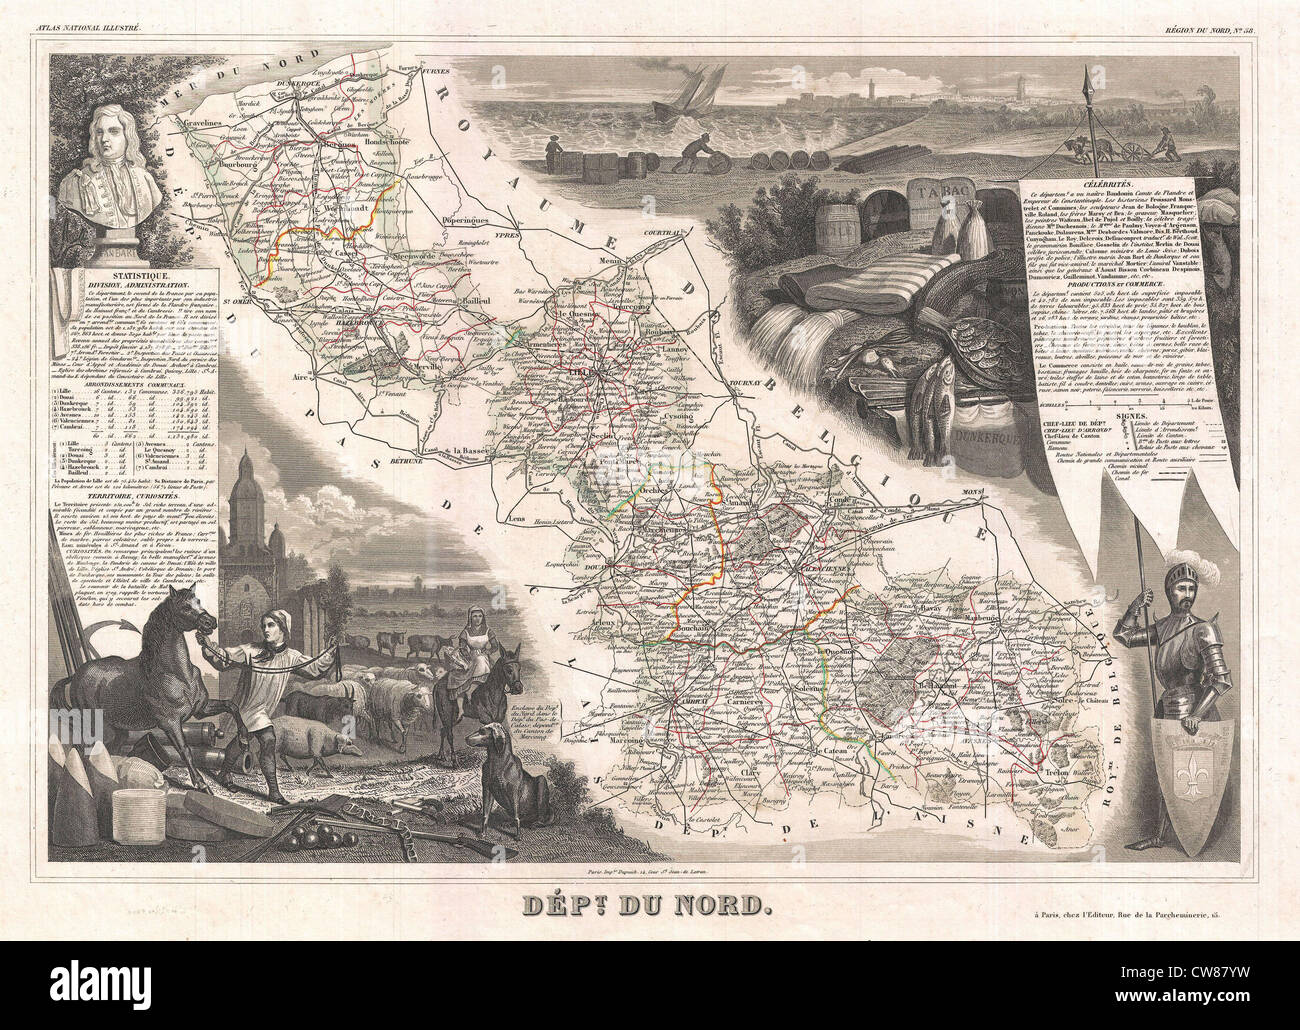 1852 Levasseur Map of the Department Du Nord, France - Stock Image